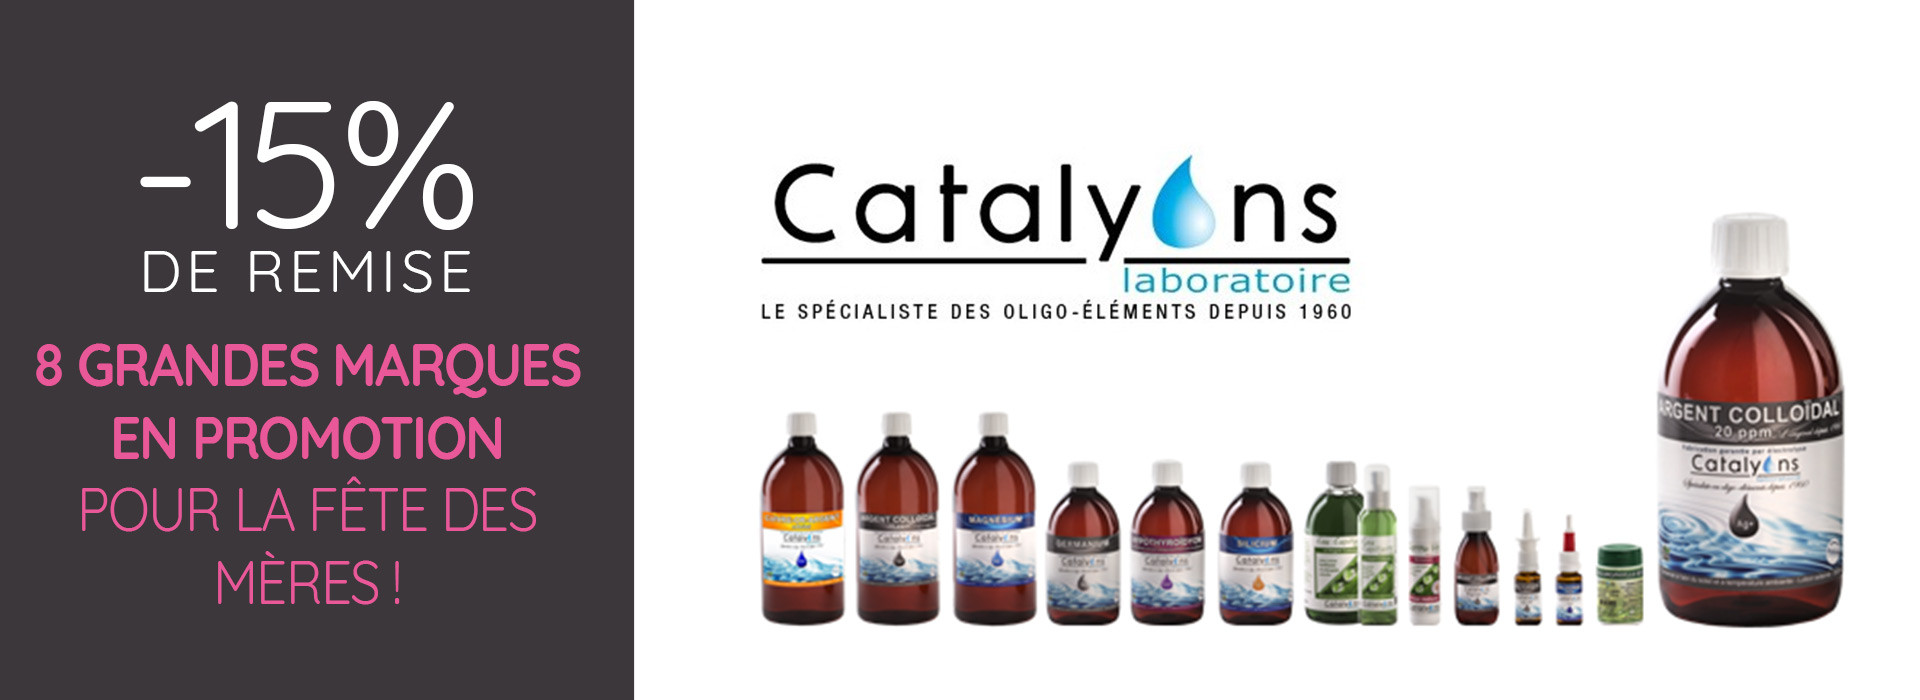 catalyons -15%